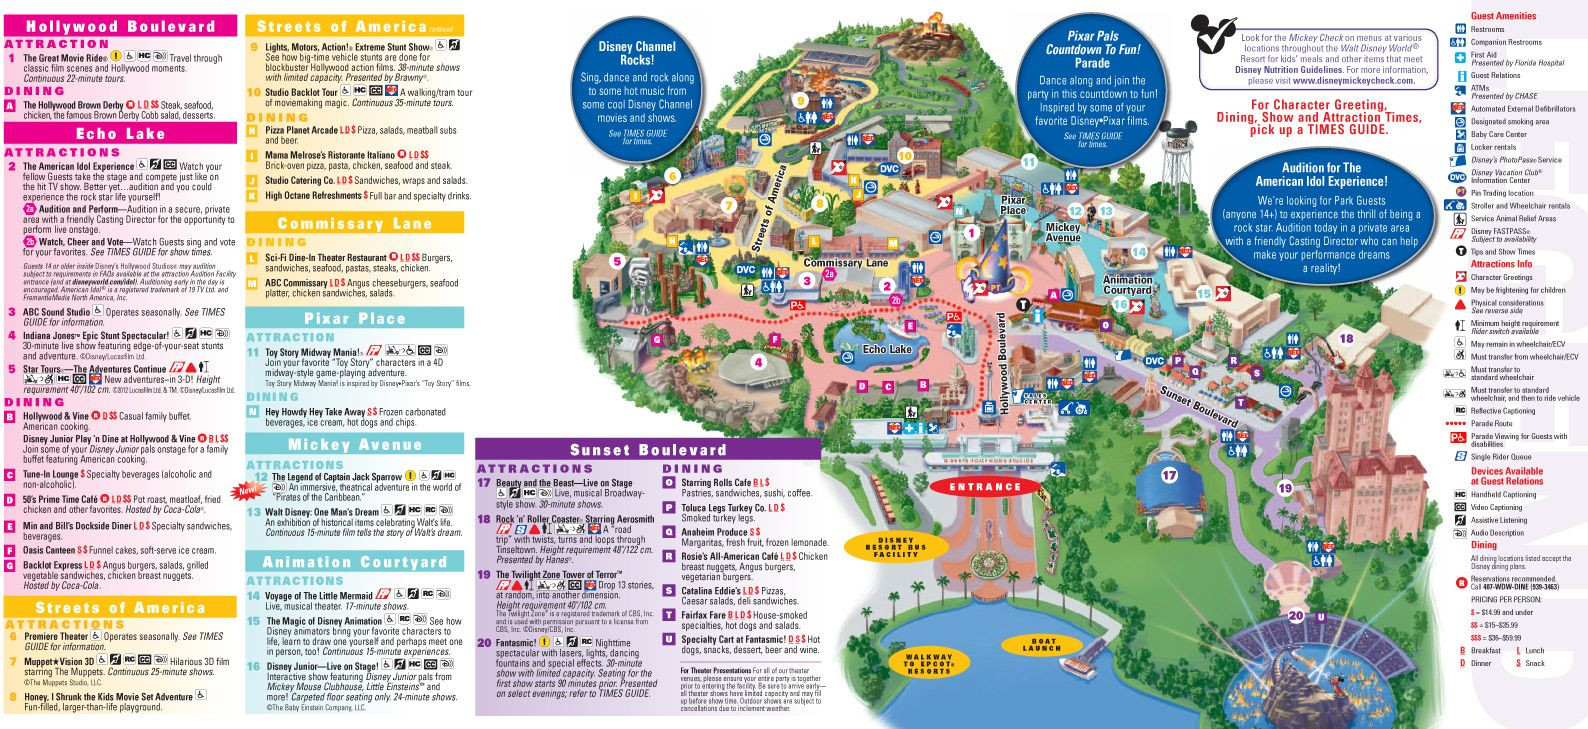 Walt Disney World Map 2014 Printable Park And For Hollywood Studios